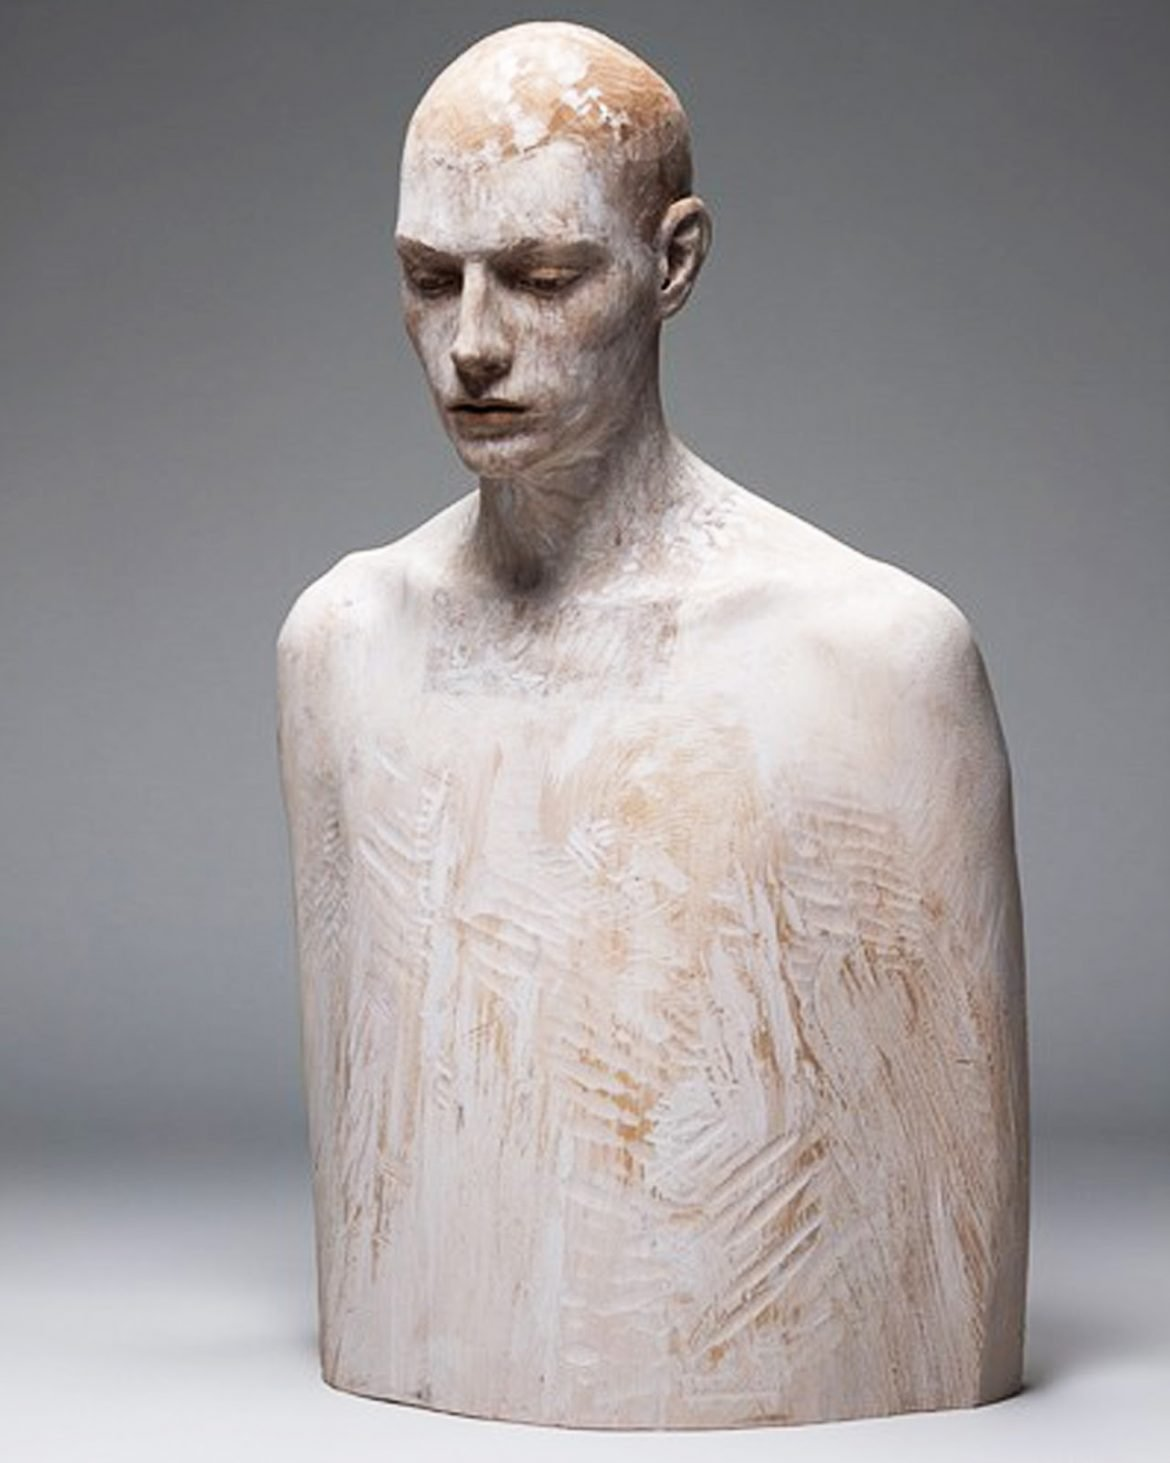 Quot Breathing Life Into Wood Quot Bruno Walpoth The Forest